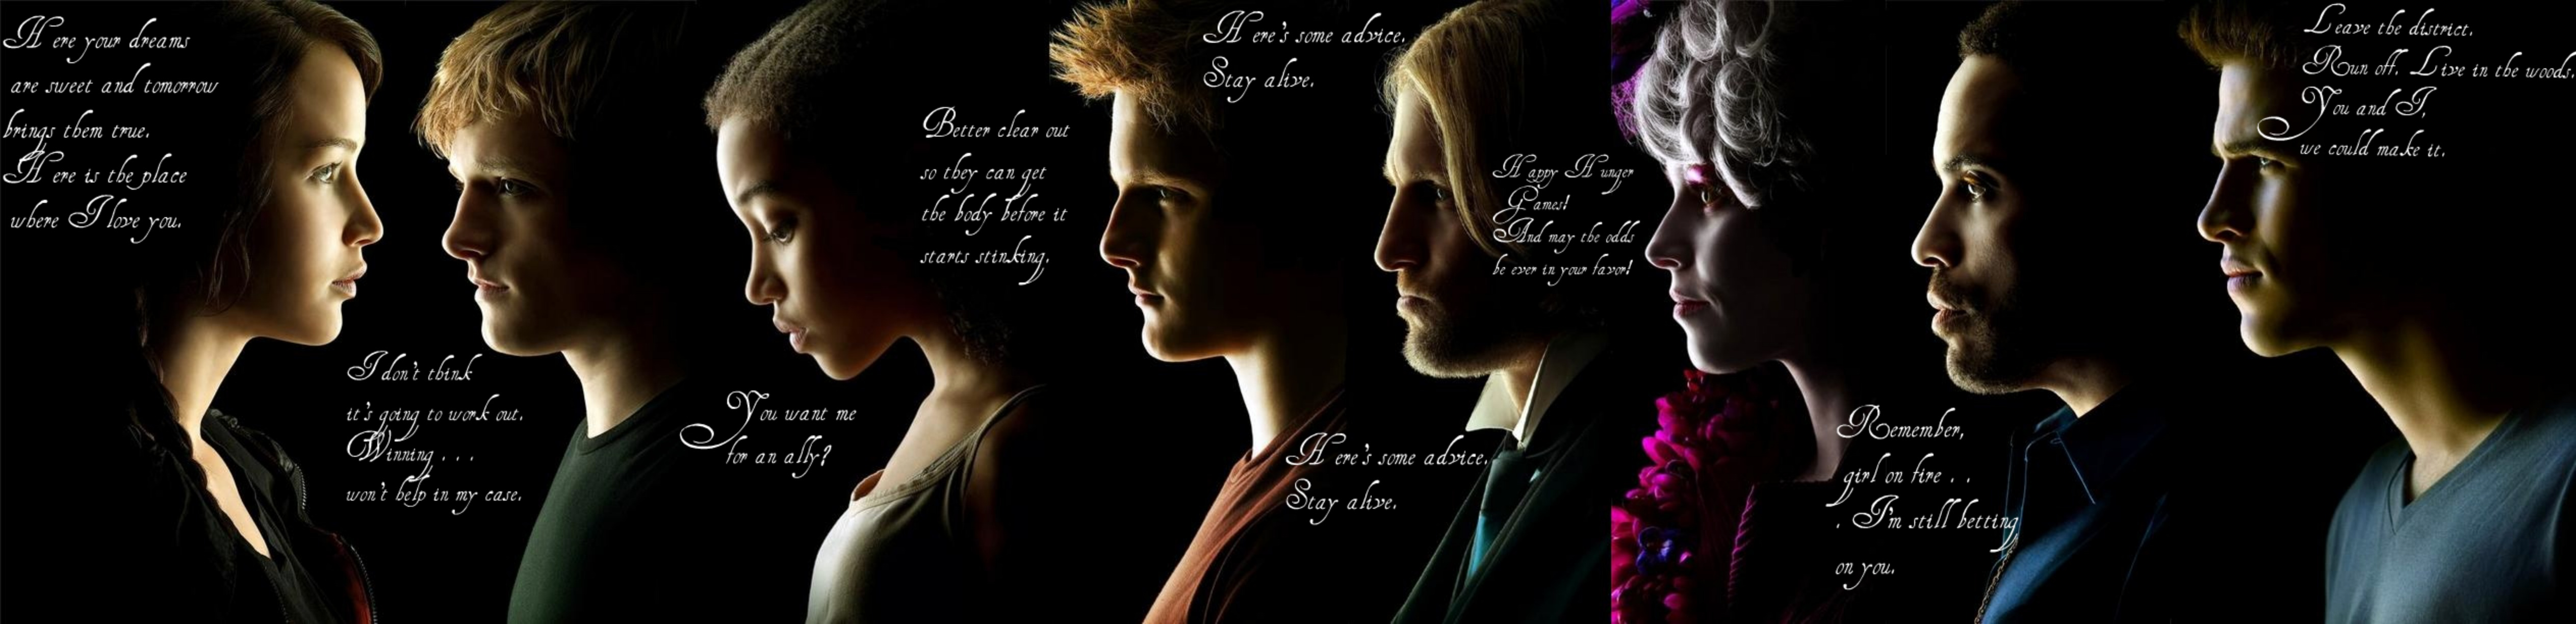 Hunger Games quote #1